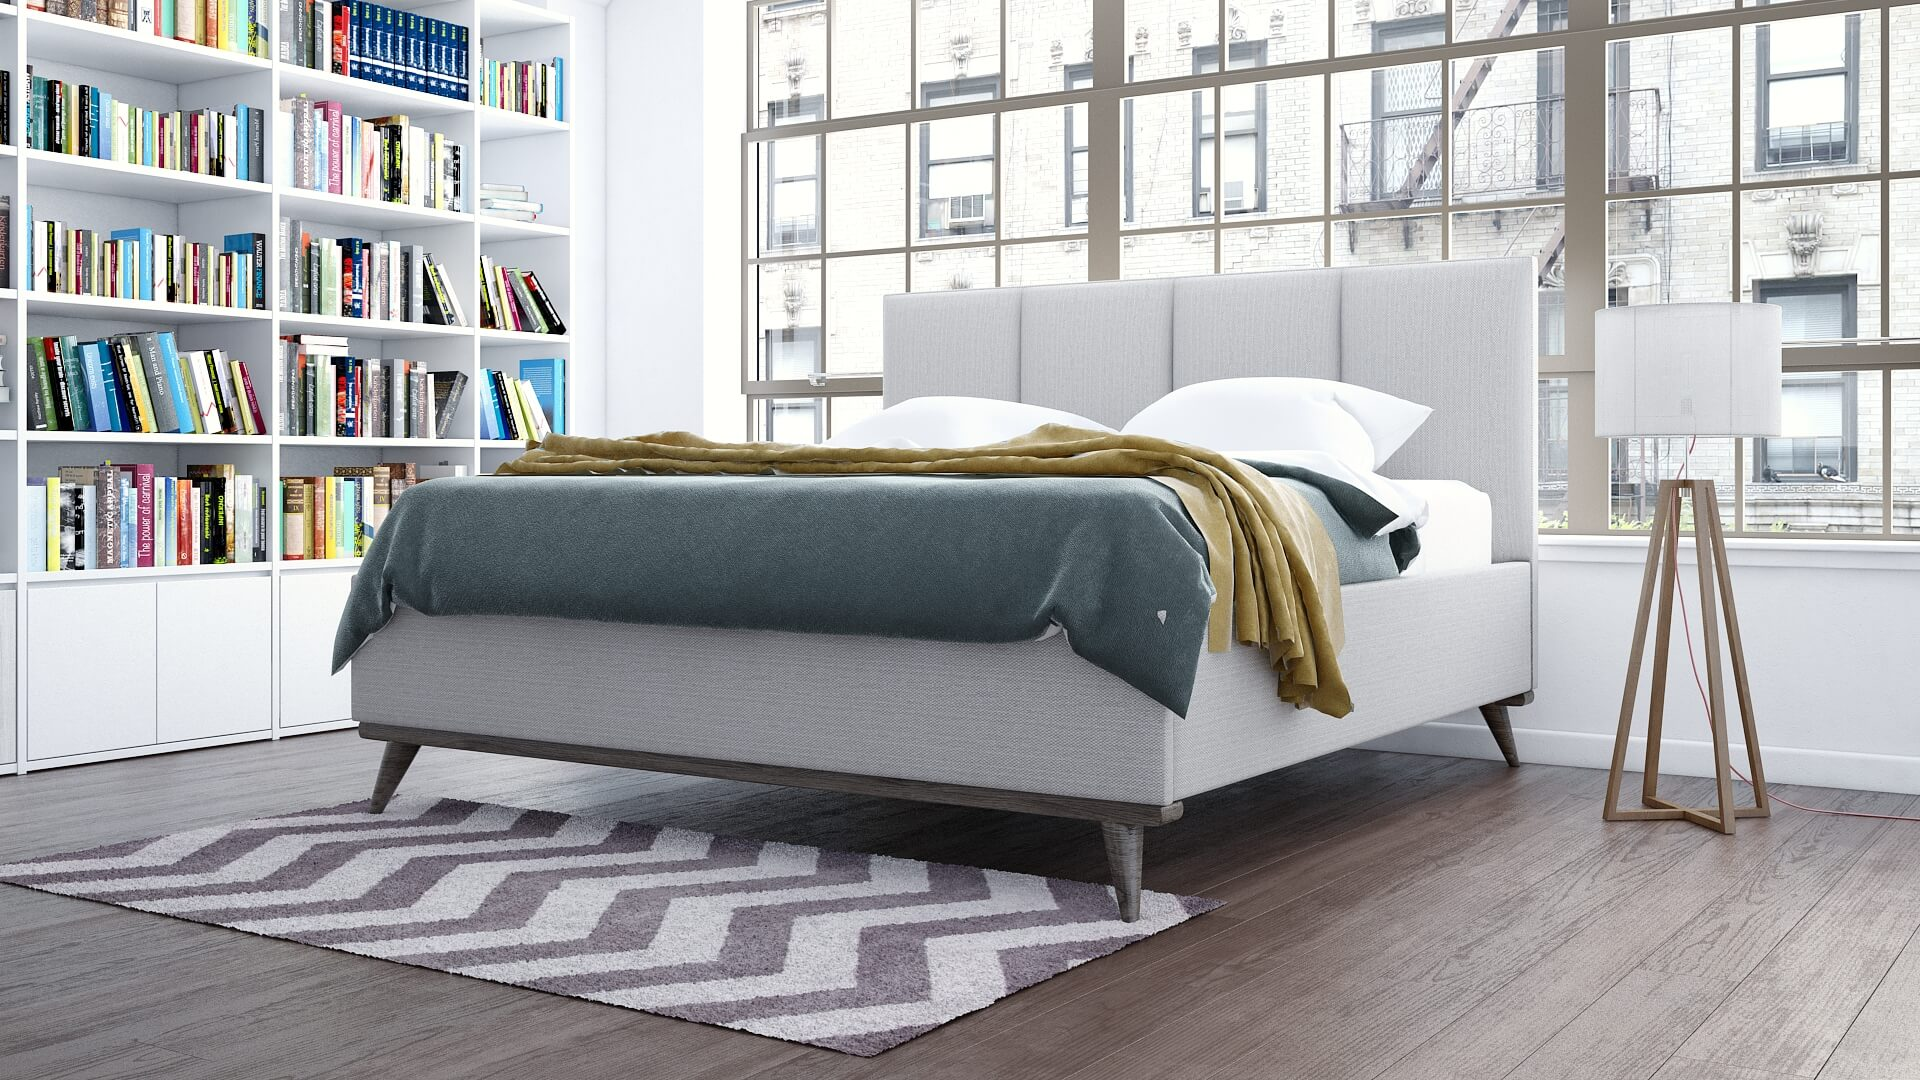 mia bed furniture gallery 1